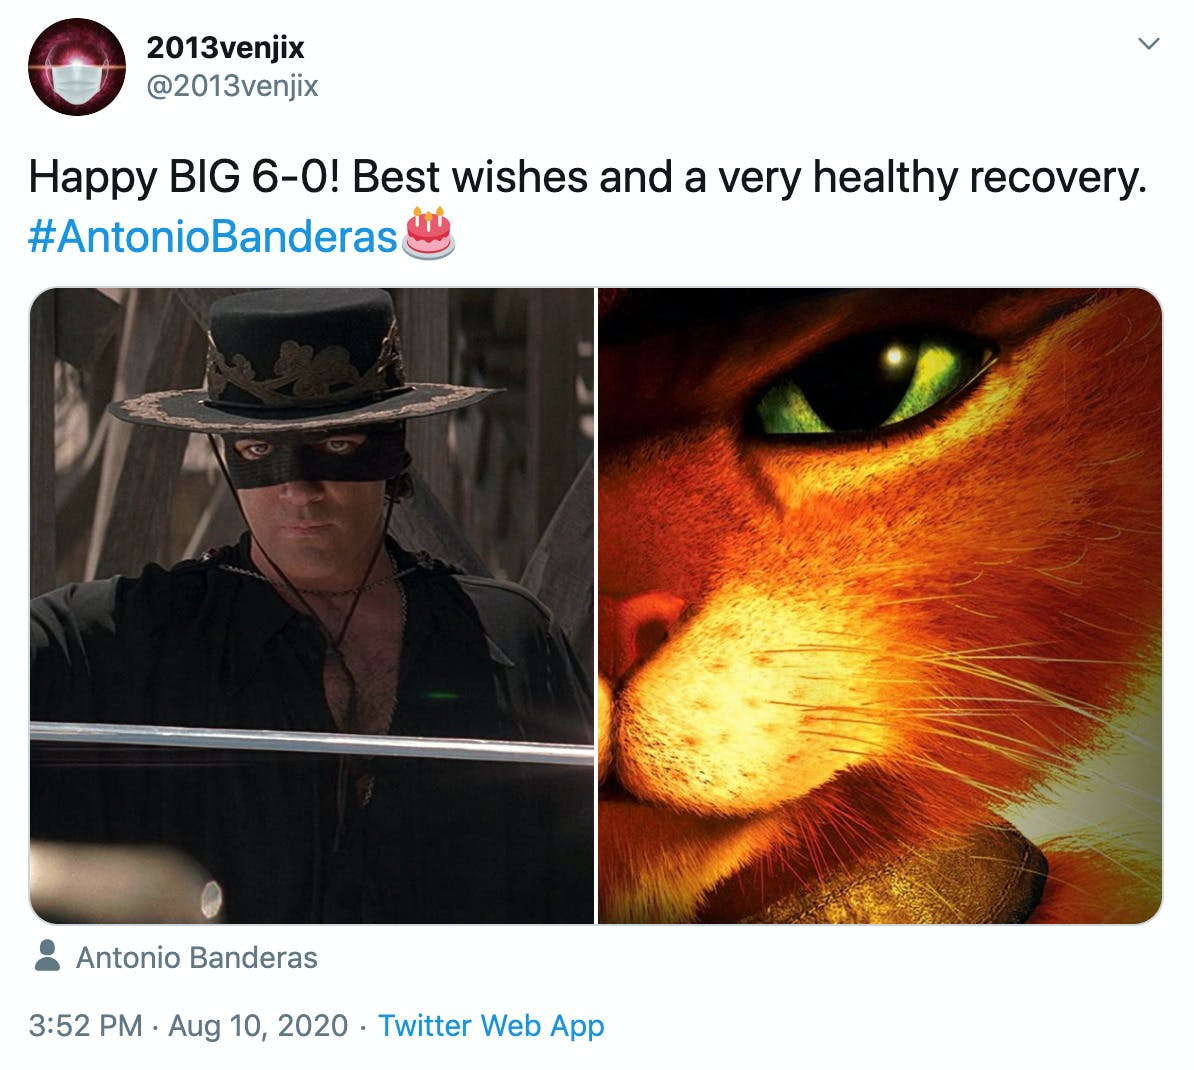 """""""Happy BIG 6-0! Best wishes and a very healthy recovery. #AntonioBanderas🎂"""" picture of him as Zorro and picture of Puss in Boots"""